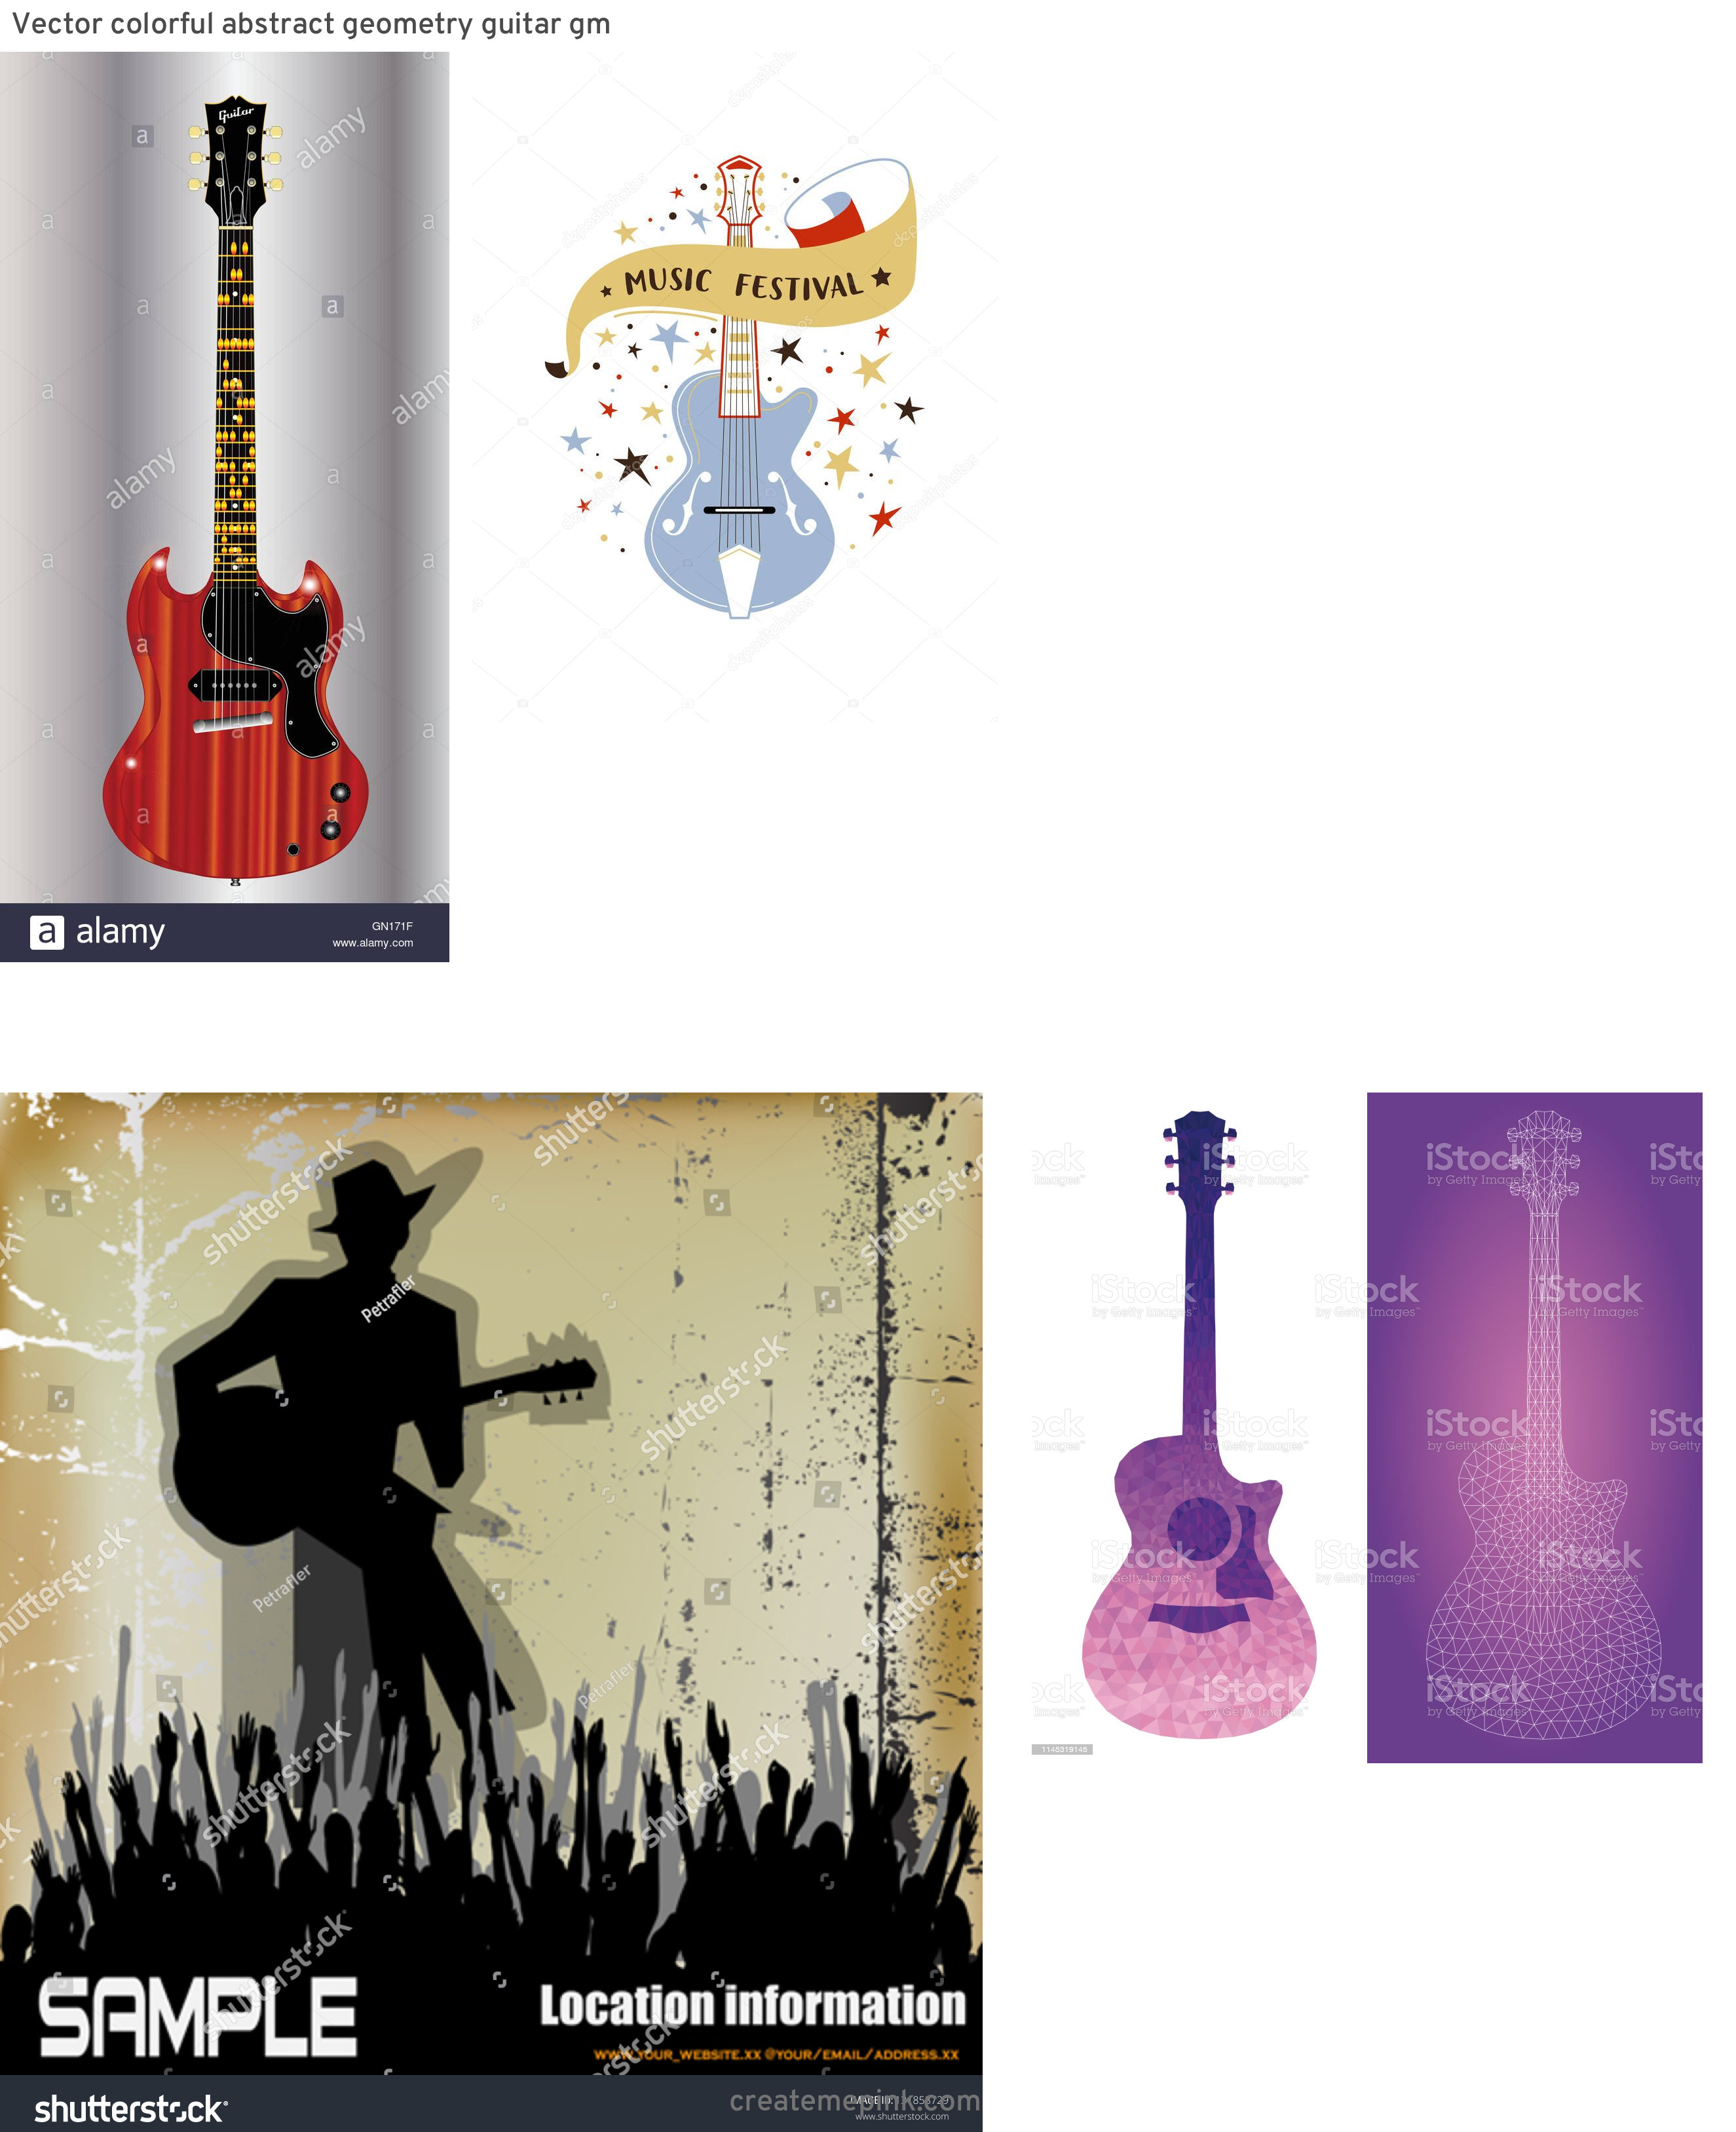 Blues Guitarist Vector Art: Vector Colorful Abstract Geometry Guitar Gm